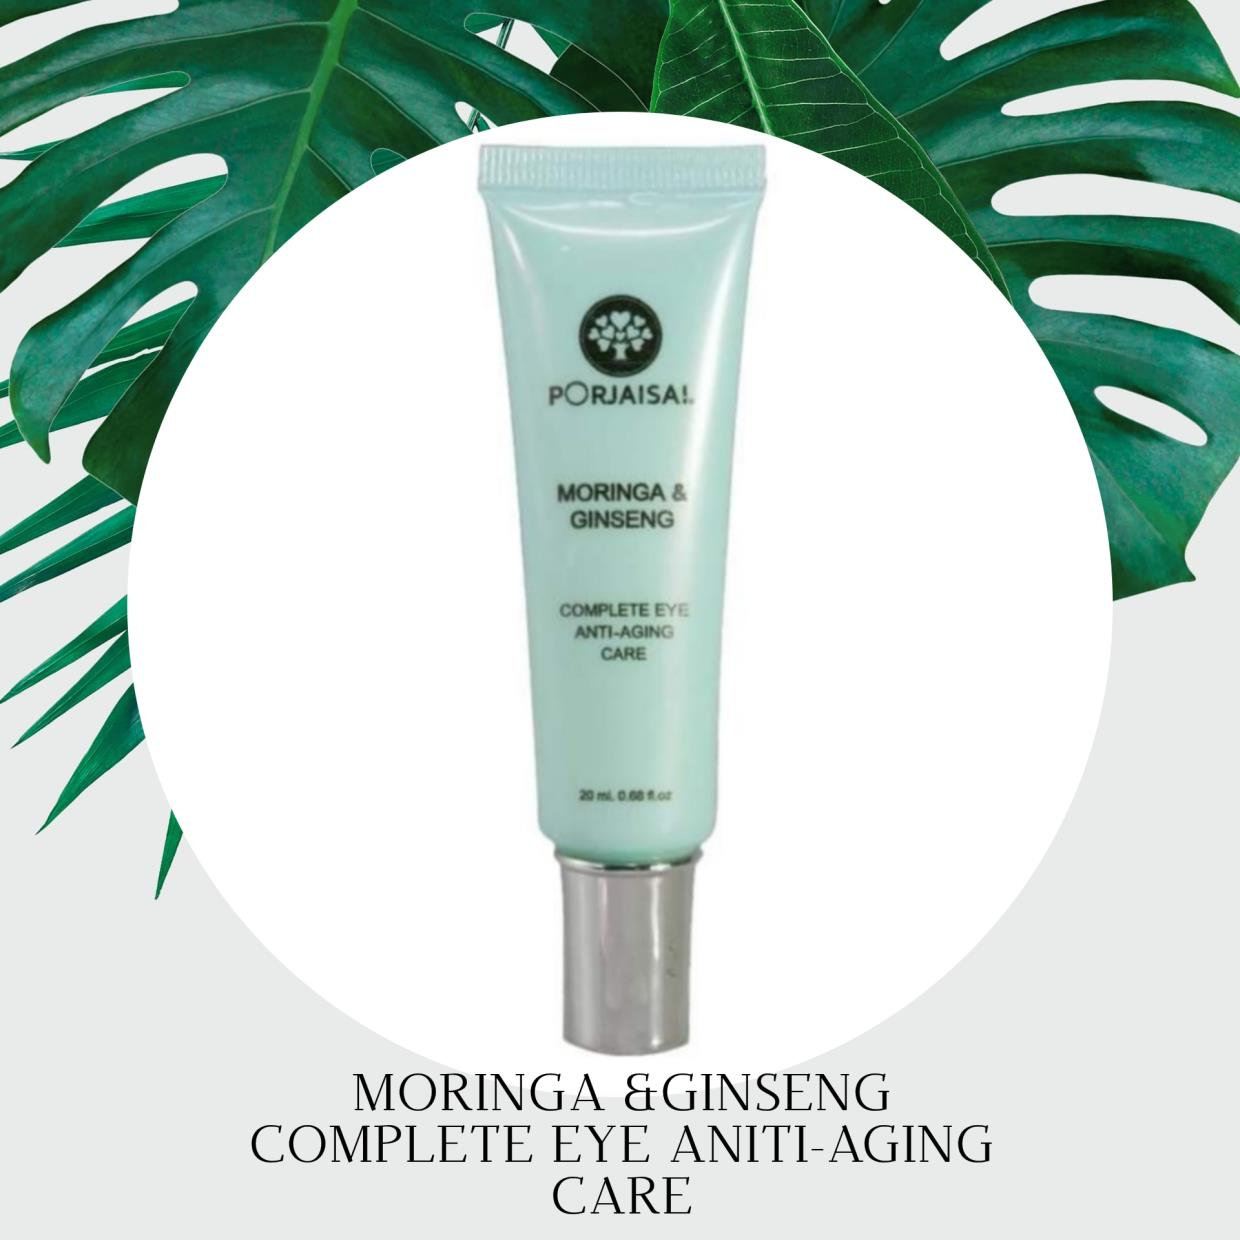 COMPLETE EYE ANITI-AGING CARE